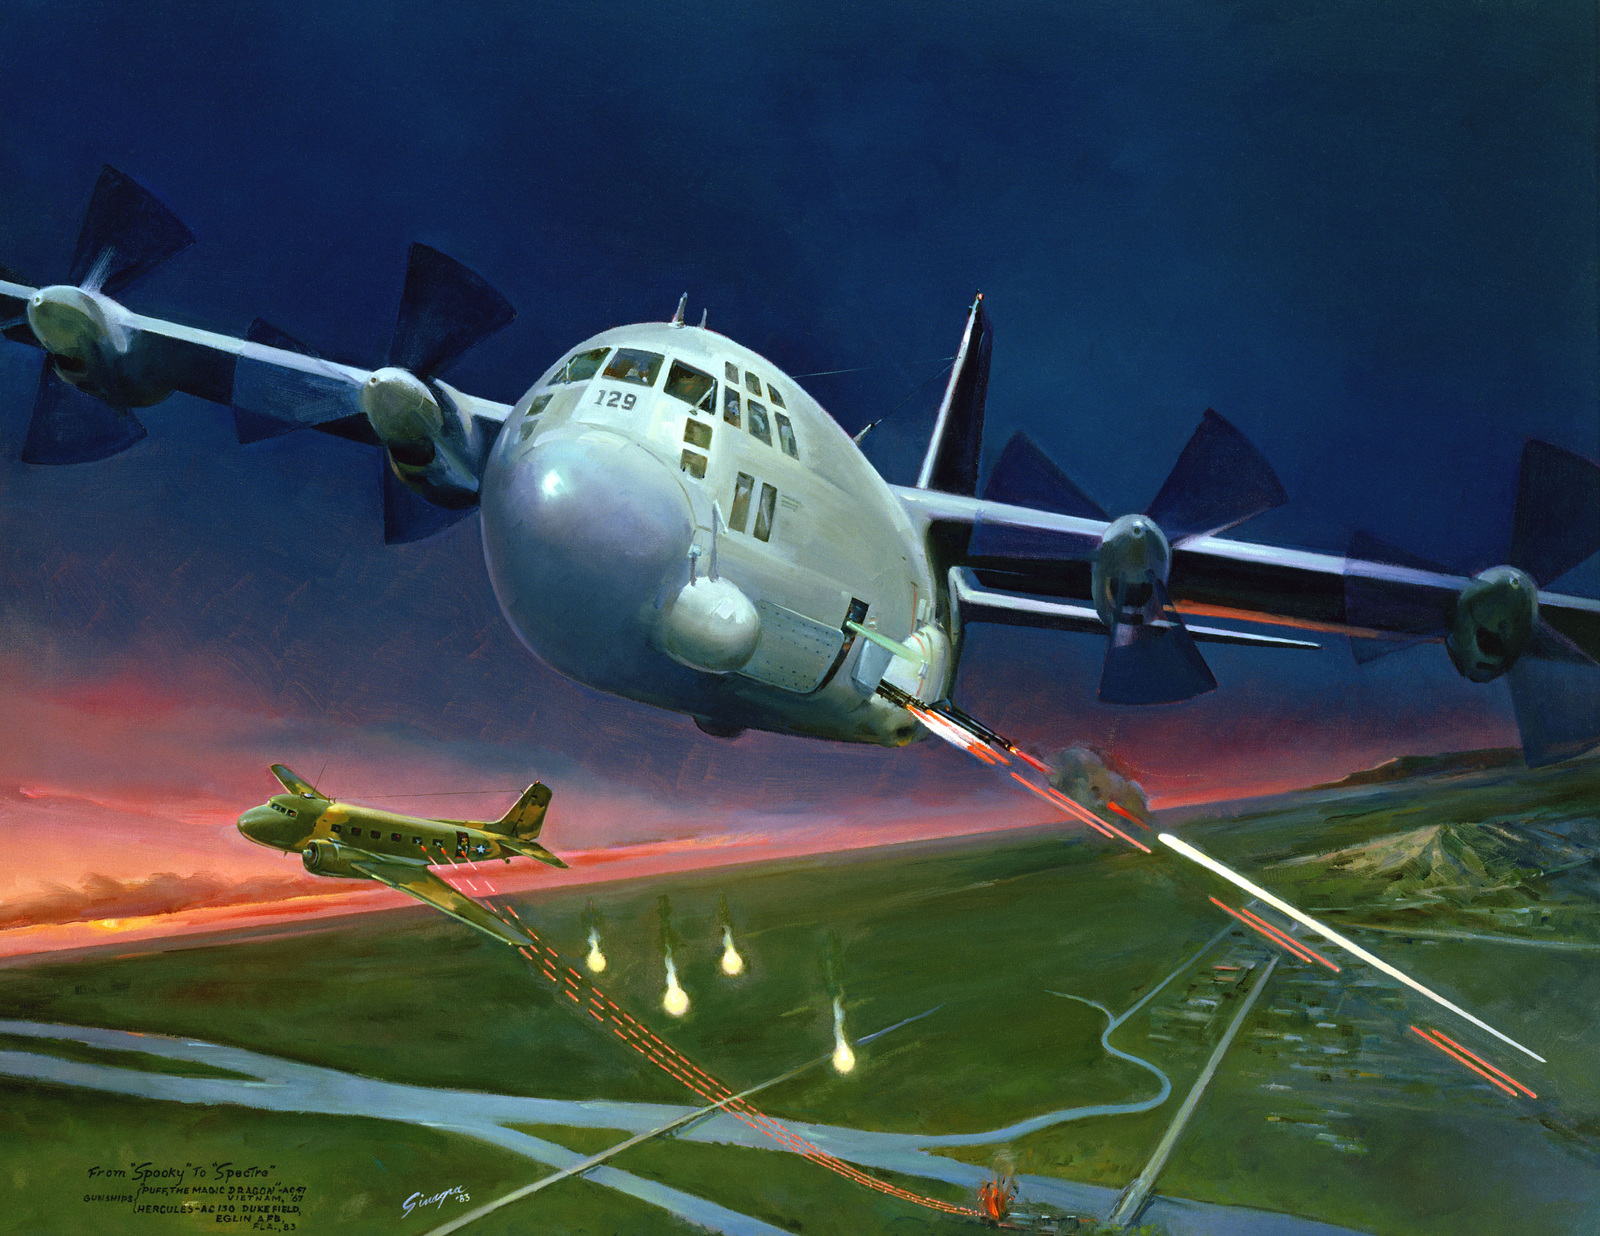 """Artwork: """"From Spooky to Spectre"""" Artist: Attilio Sinagra, USAF Art Collection"""